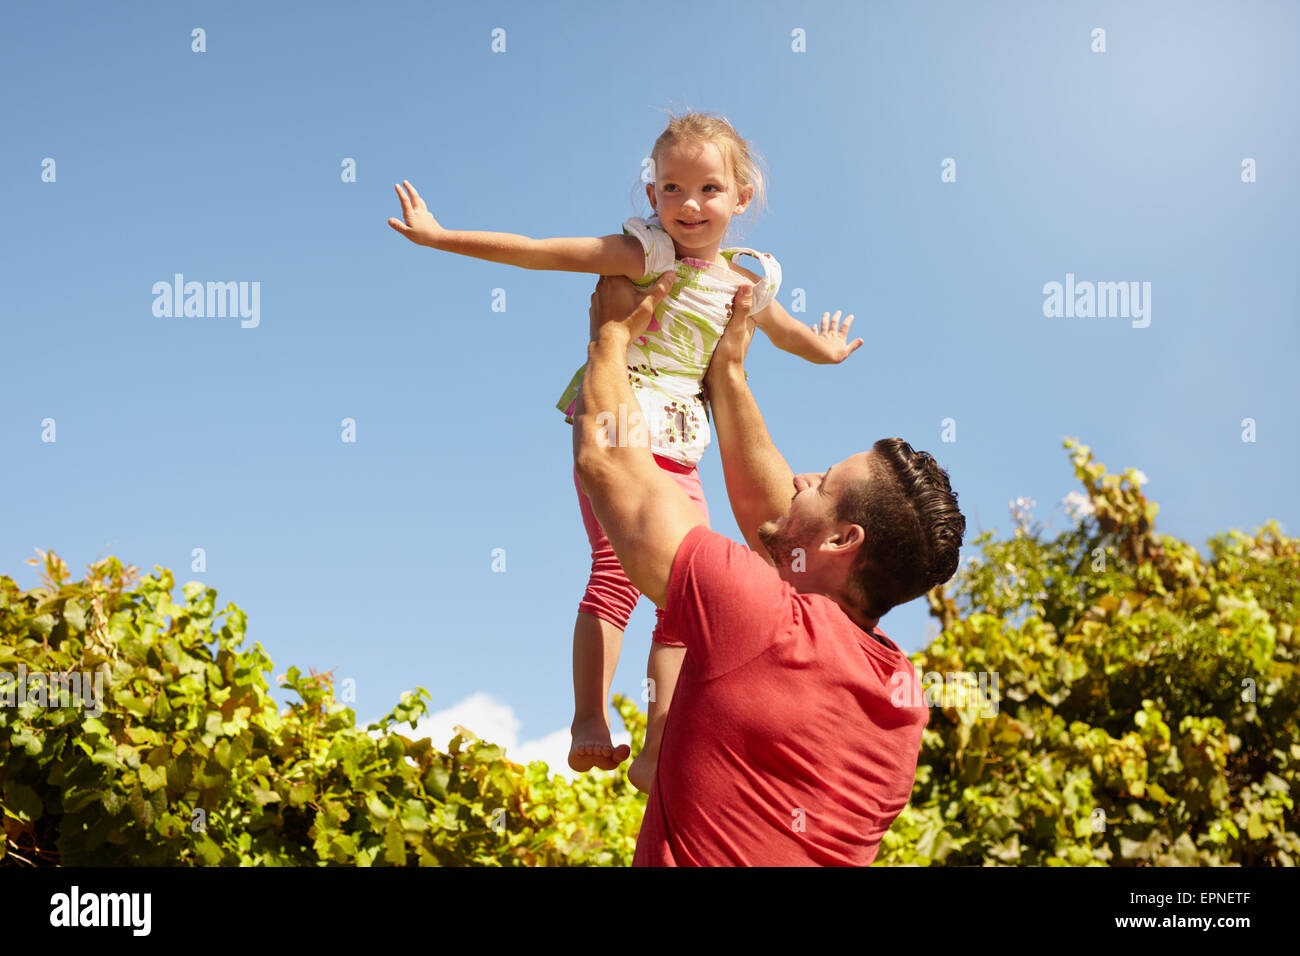 Little girl pretending to be a airplane as her father lifts her in the air. Father holding his daughter up high - Stock Image